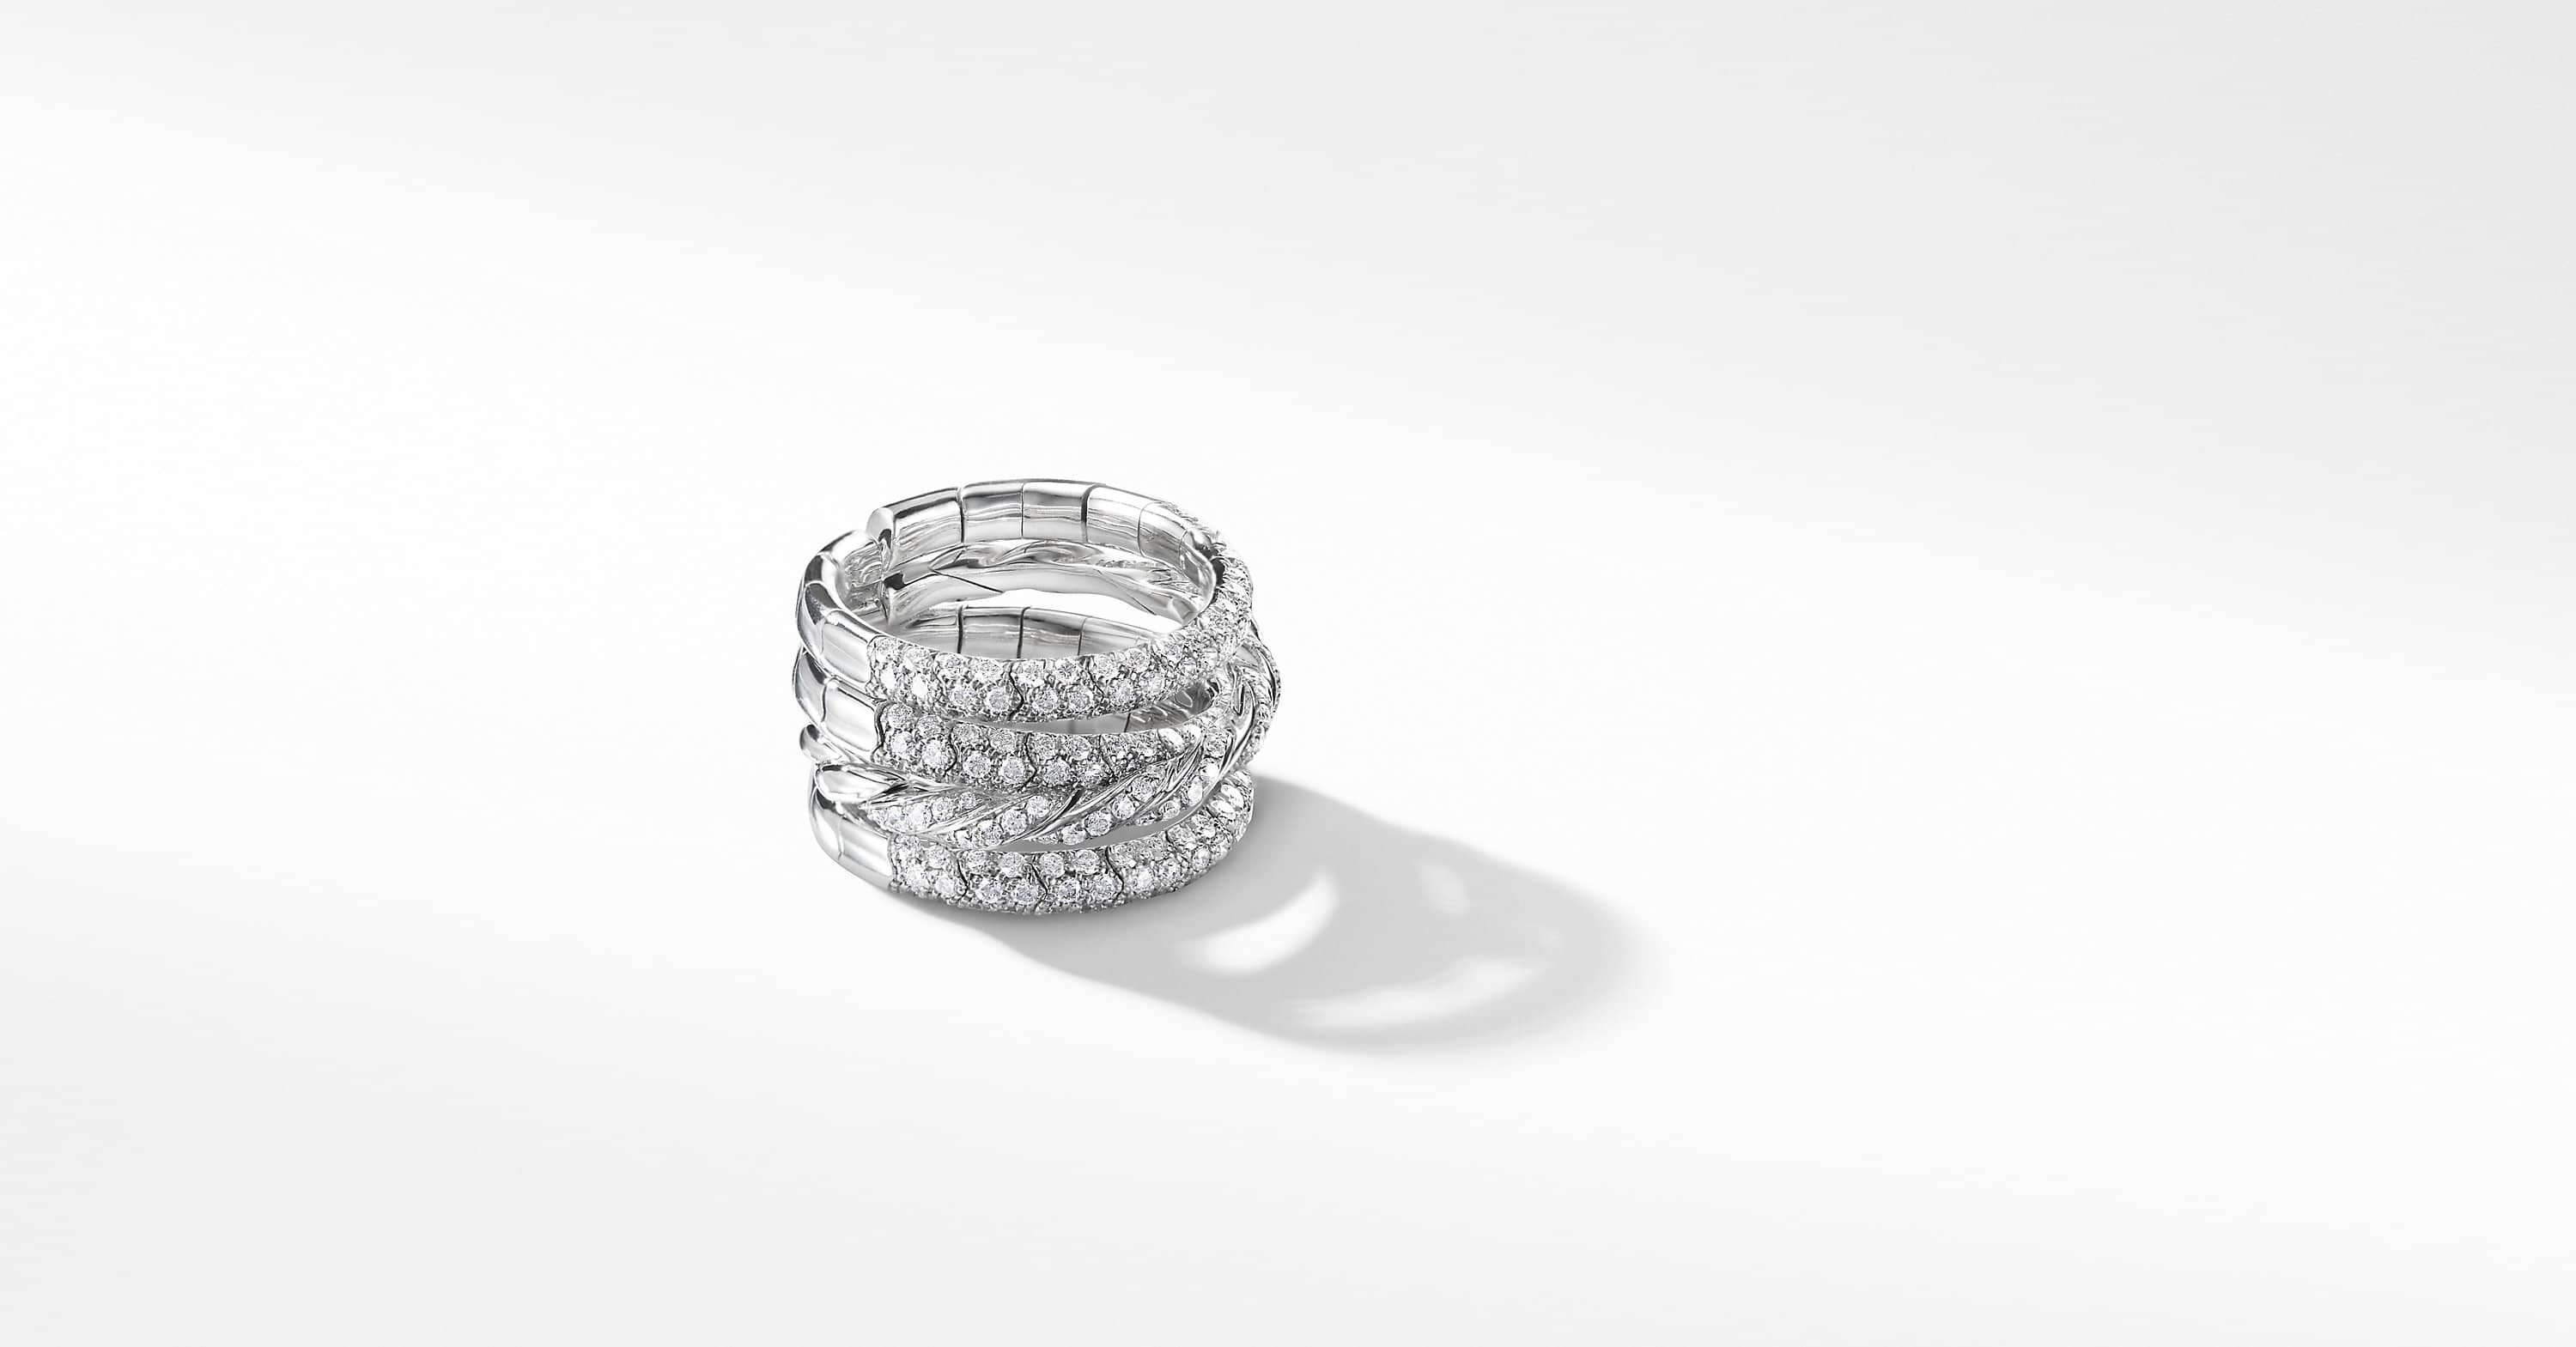 Bague Pavéflex à quatre rangs en or 18 carats et diamants